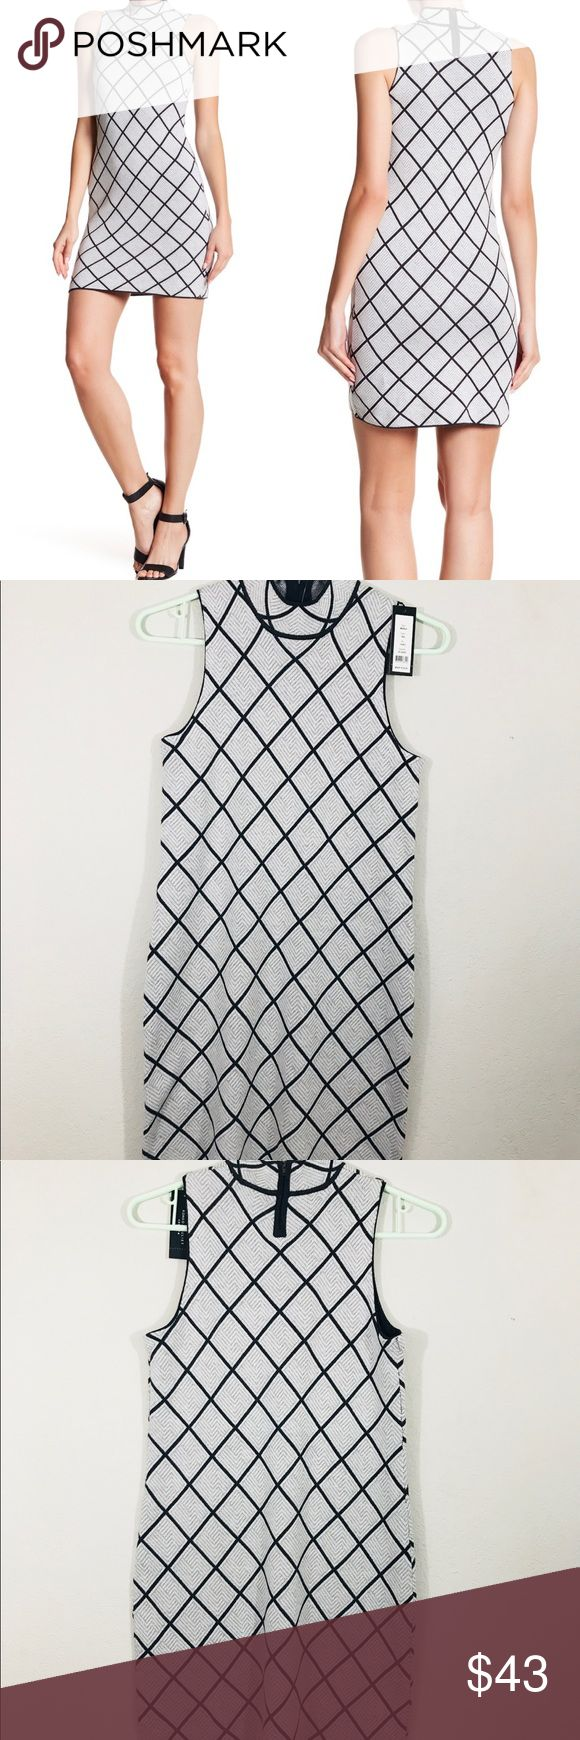 "Romeo + Juliet Couture Geometric Sleeveless Dress Romeo + Juliet Couture Geometric Sleeveless Dress  Size Medium  Brand New with tags  Measurements were taken with garment laying flat. Chest: 15""  Length: 34.5"" Romeo & Juliet Couture Dresses"